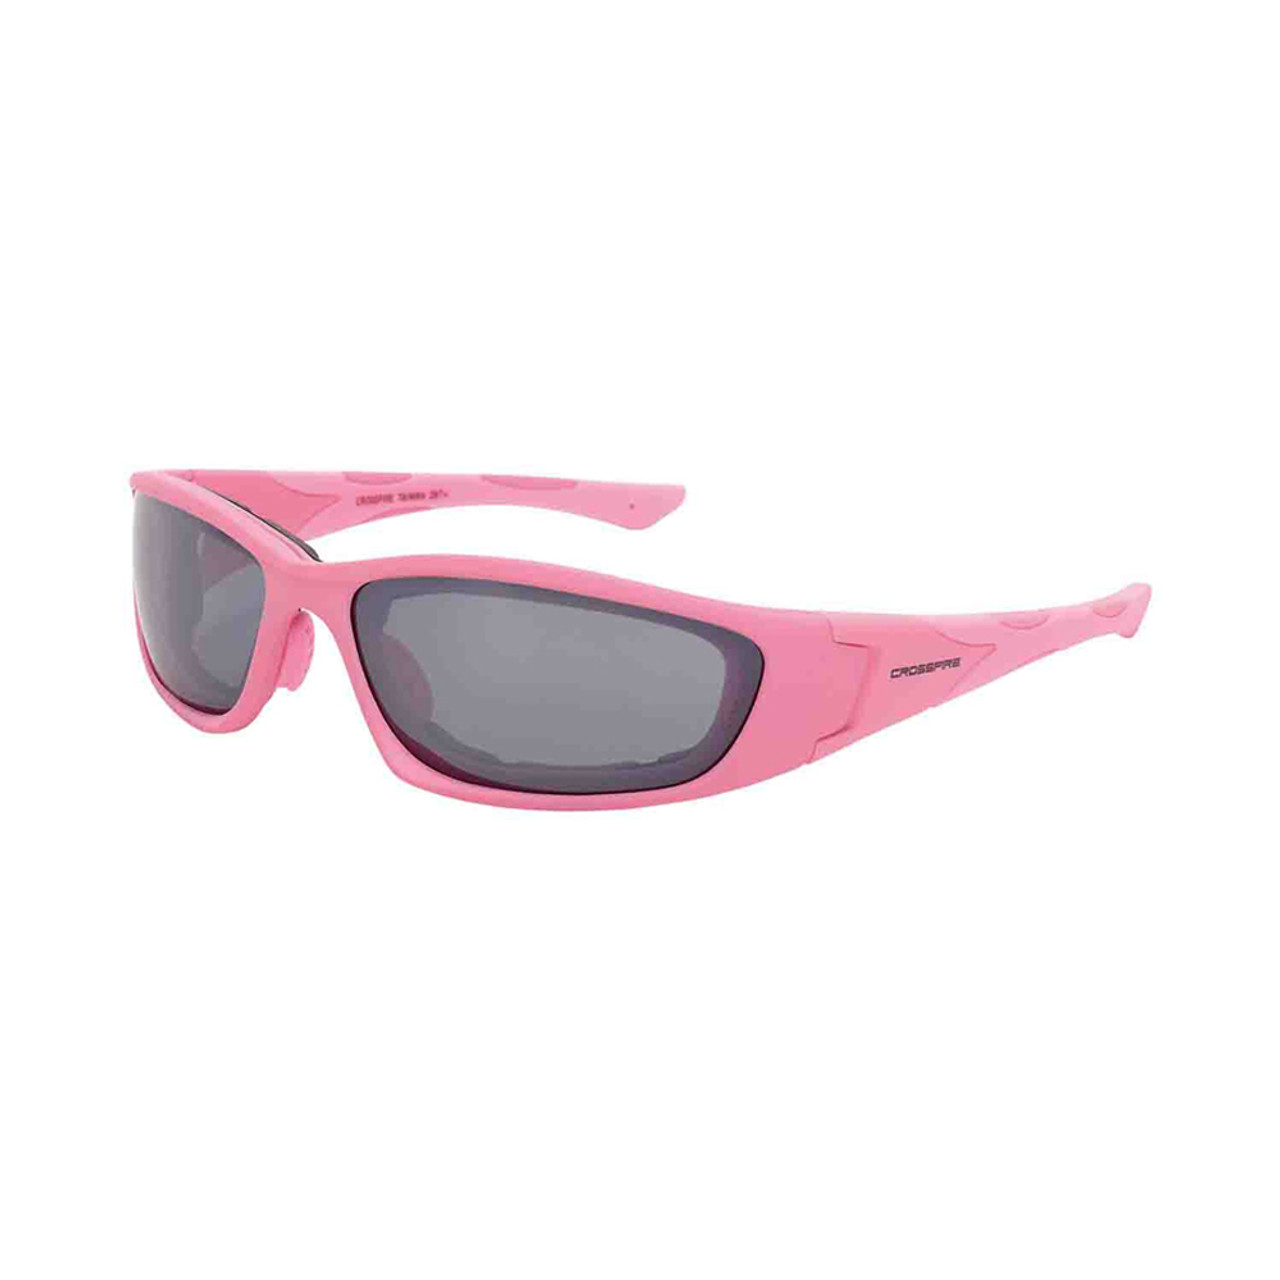 87395c6070eb1 CrossFire MP7 Full Frame HD Anti-Fog Safety Glasses - CrossFire - Solid  light pink